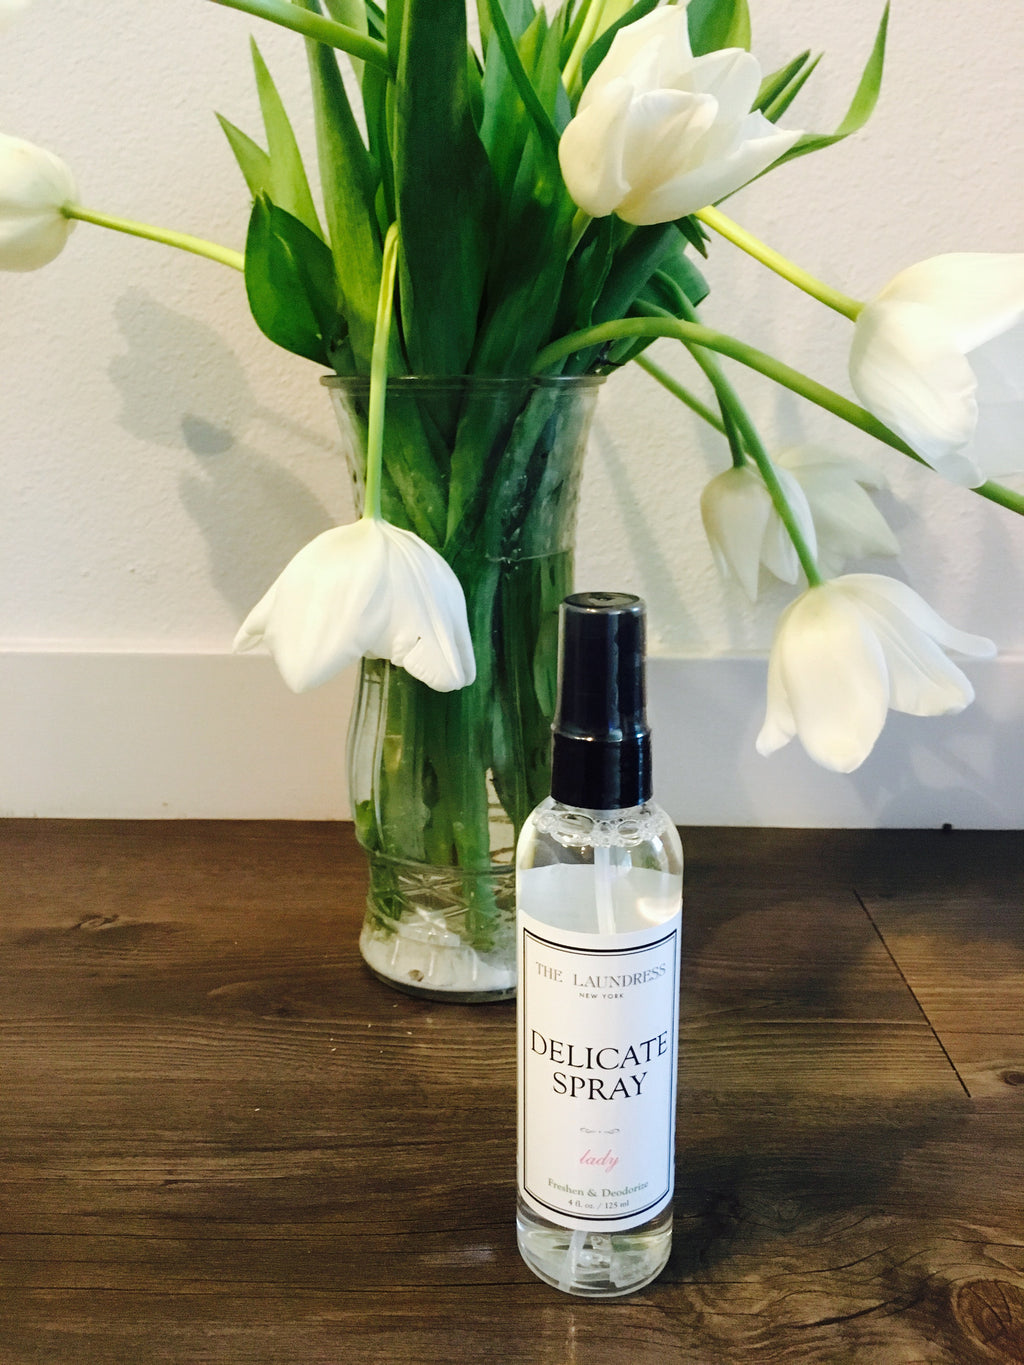 The Laundress-Delicate Spray